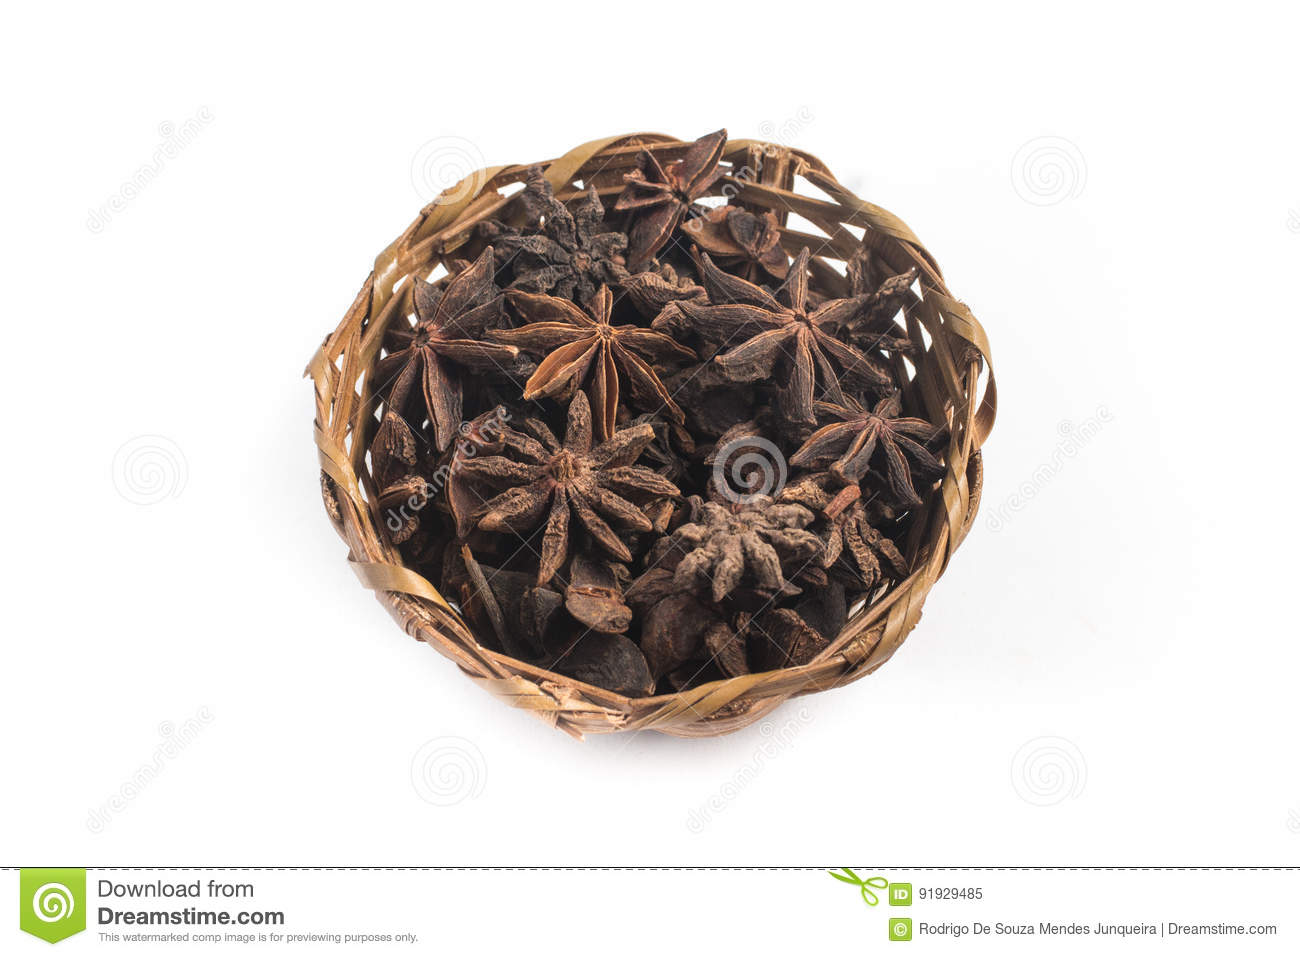 Star Anis into a Basket